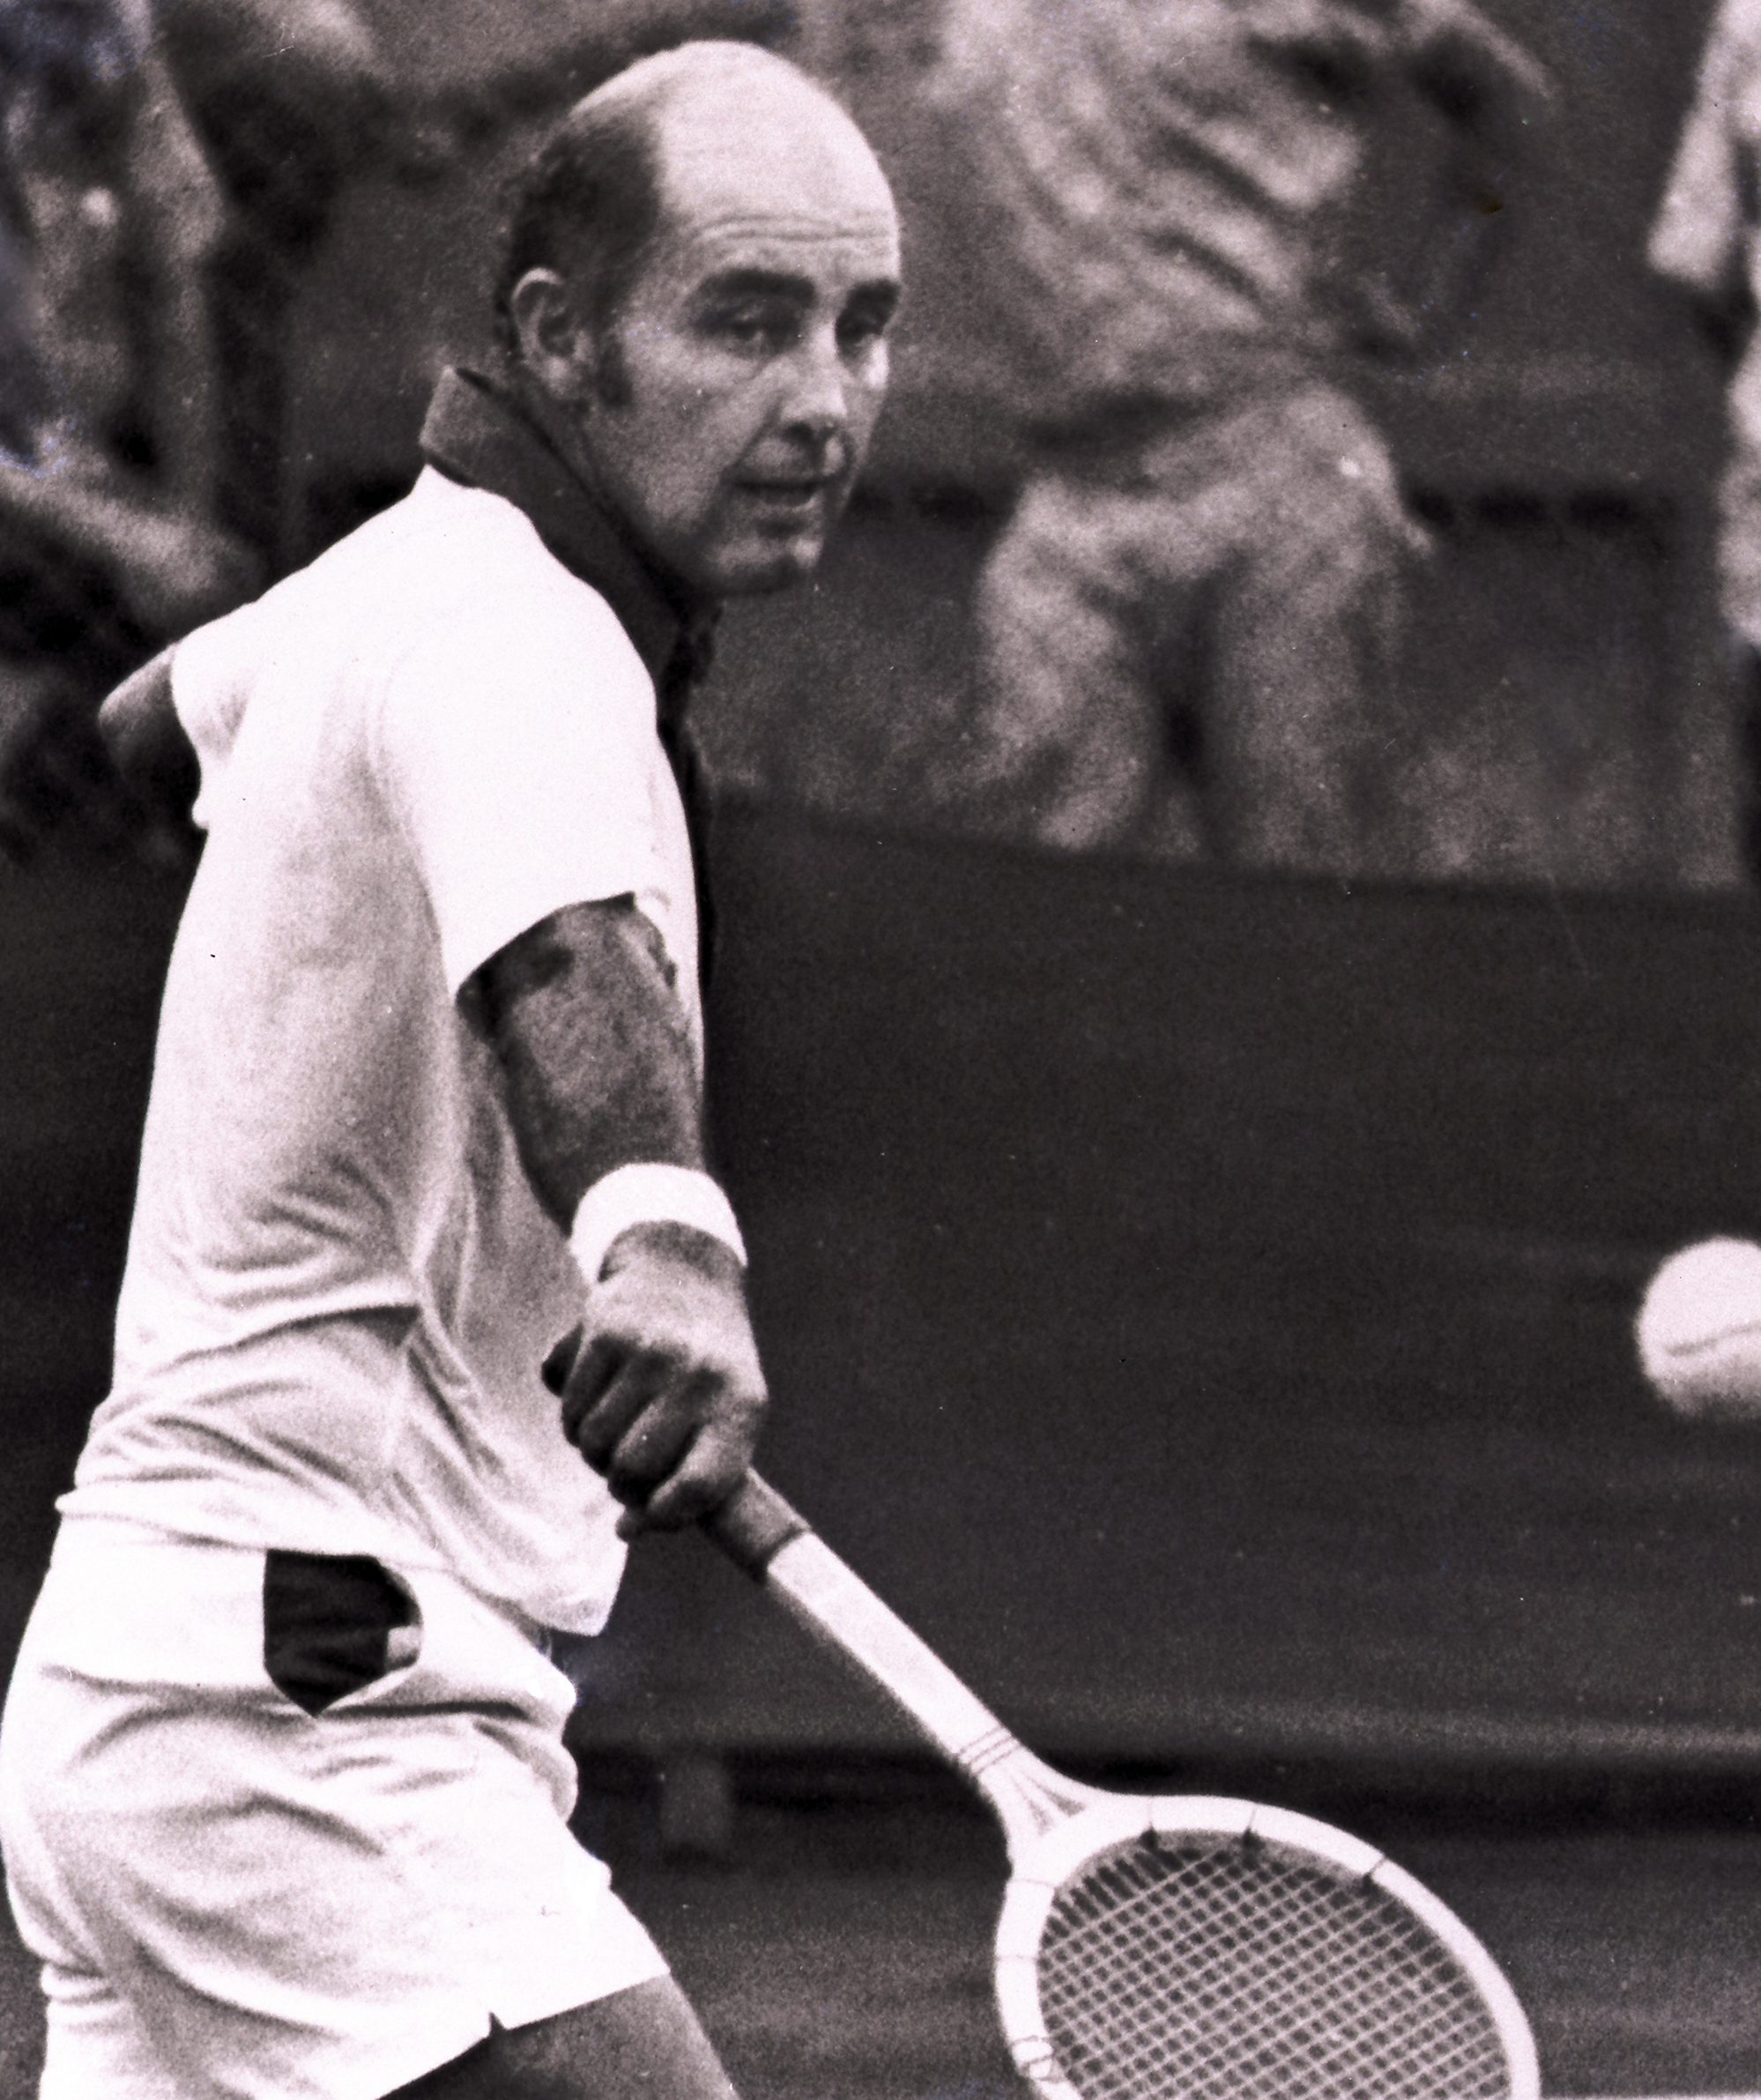 FILE - This 1973 file photo shows Bob Hewitt. The Rhode Island-based International Tennis Hall of Fame has hired a Boston attorney to investigate allegations that one-time doubles champion Hewitt sexually abused underage girls he coached. (AP Photo, File)